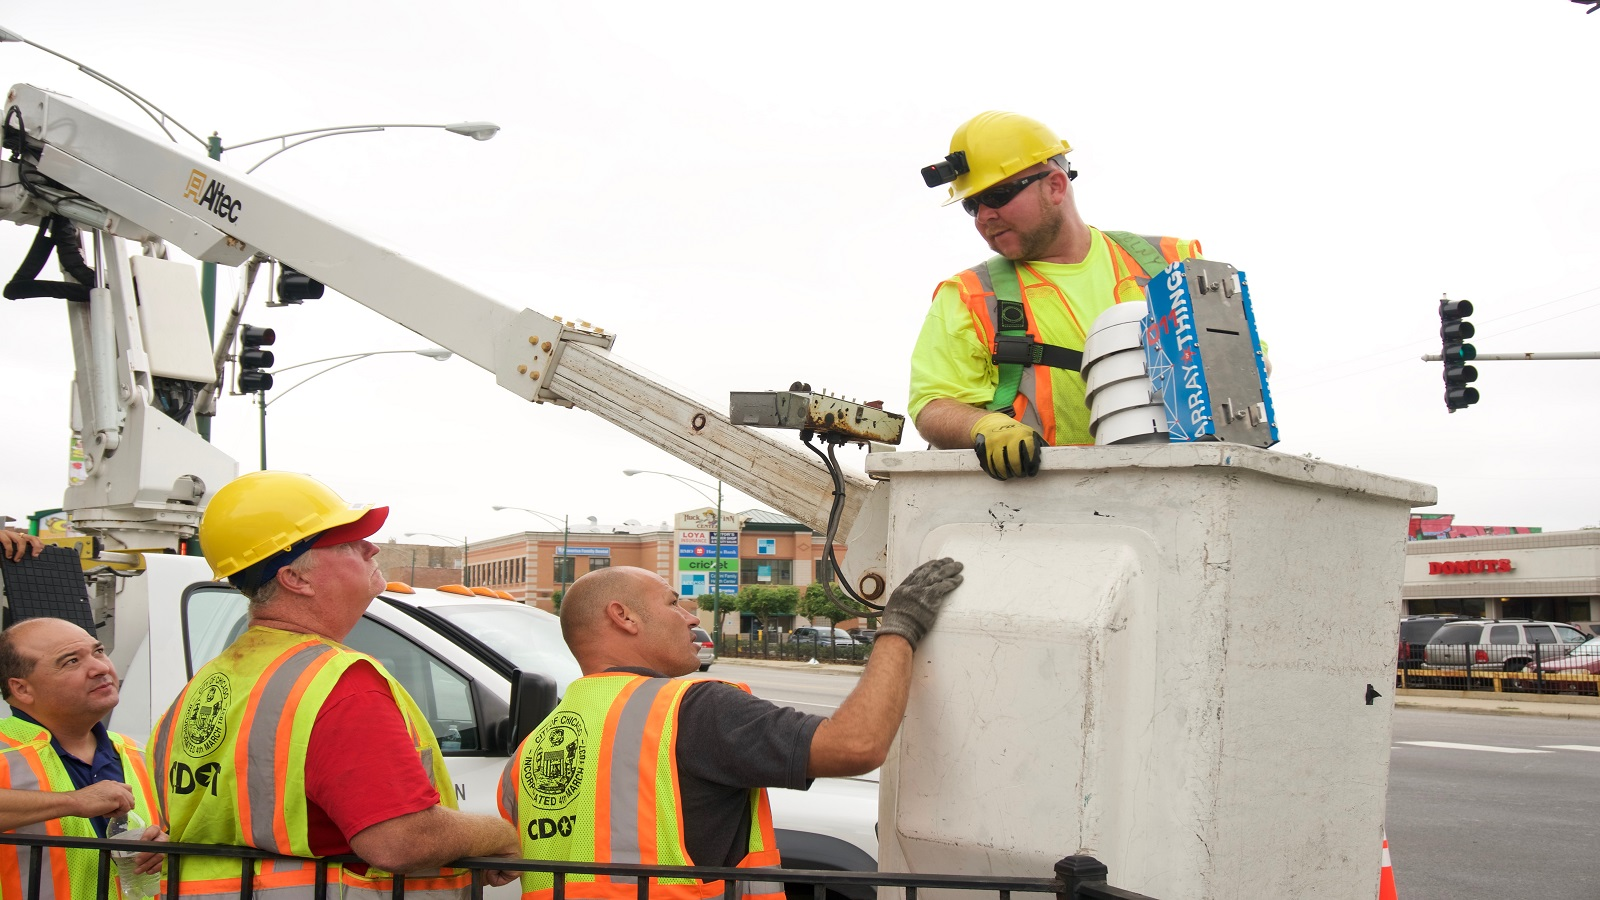 Workers from the Chicago Department of Transportation install a node for the Array of Things, a distributed sensing network for urban environments, at Damen and Archer avenues in downtown Chicago. (Image by Rob Mitchum/University of Chicago.)